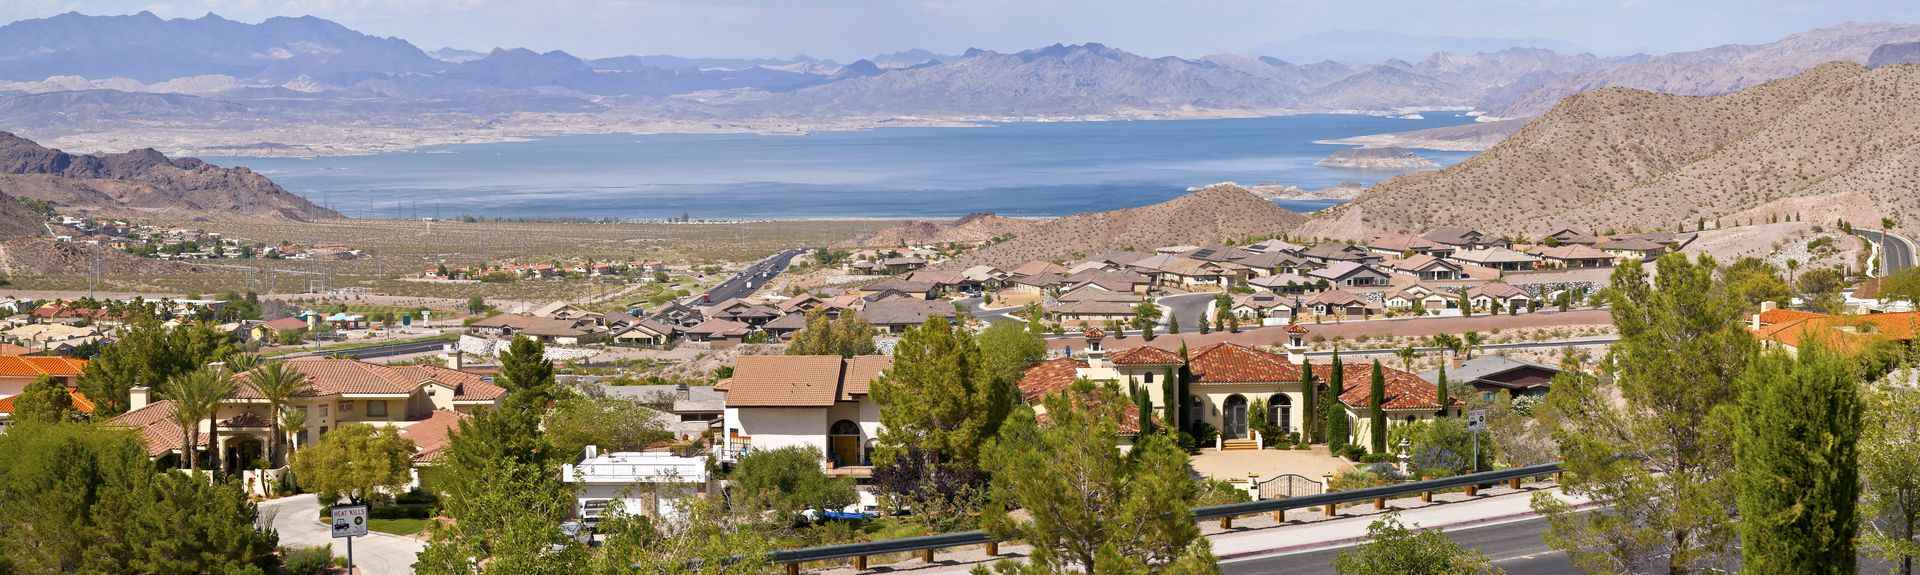 Boulder City, Nevada, United States